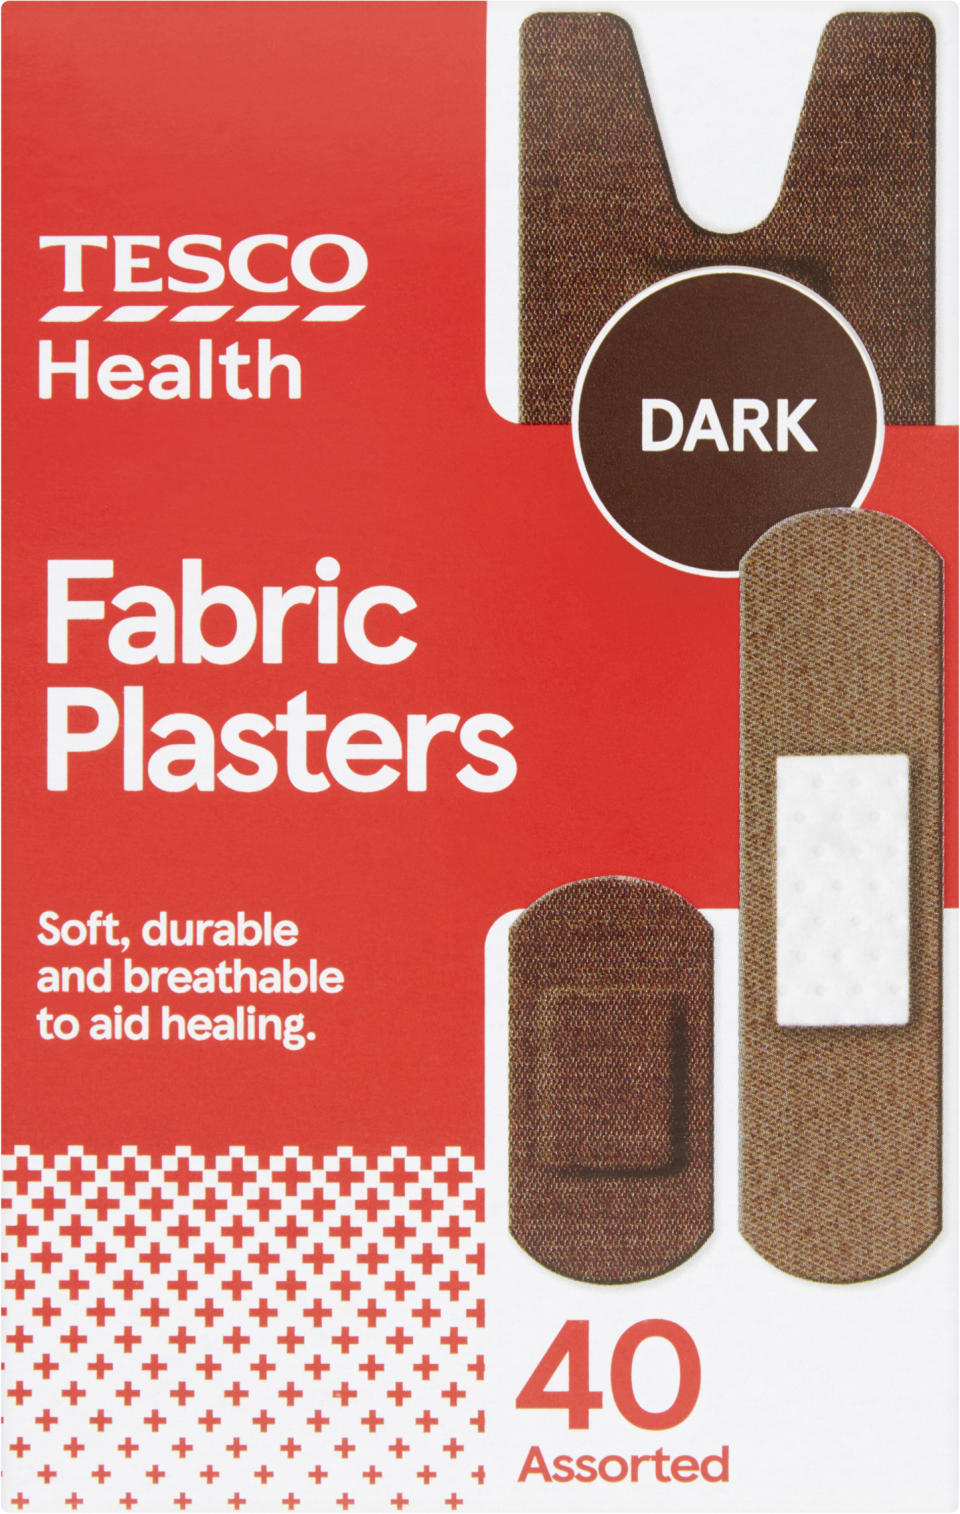 The plasters come in three different skin tones (Tesco/PA)